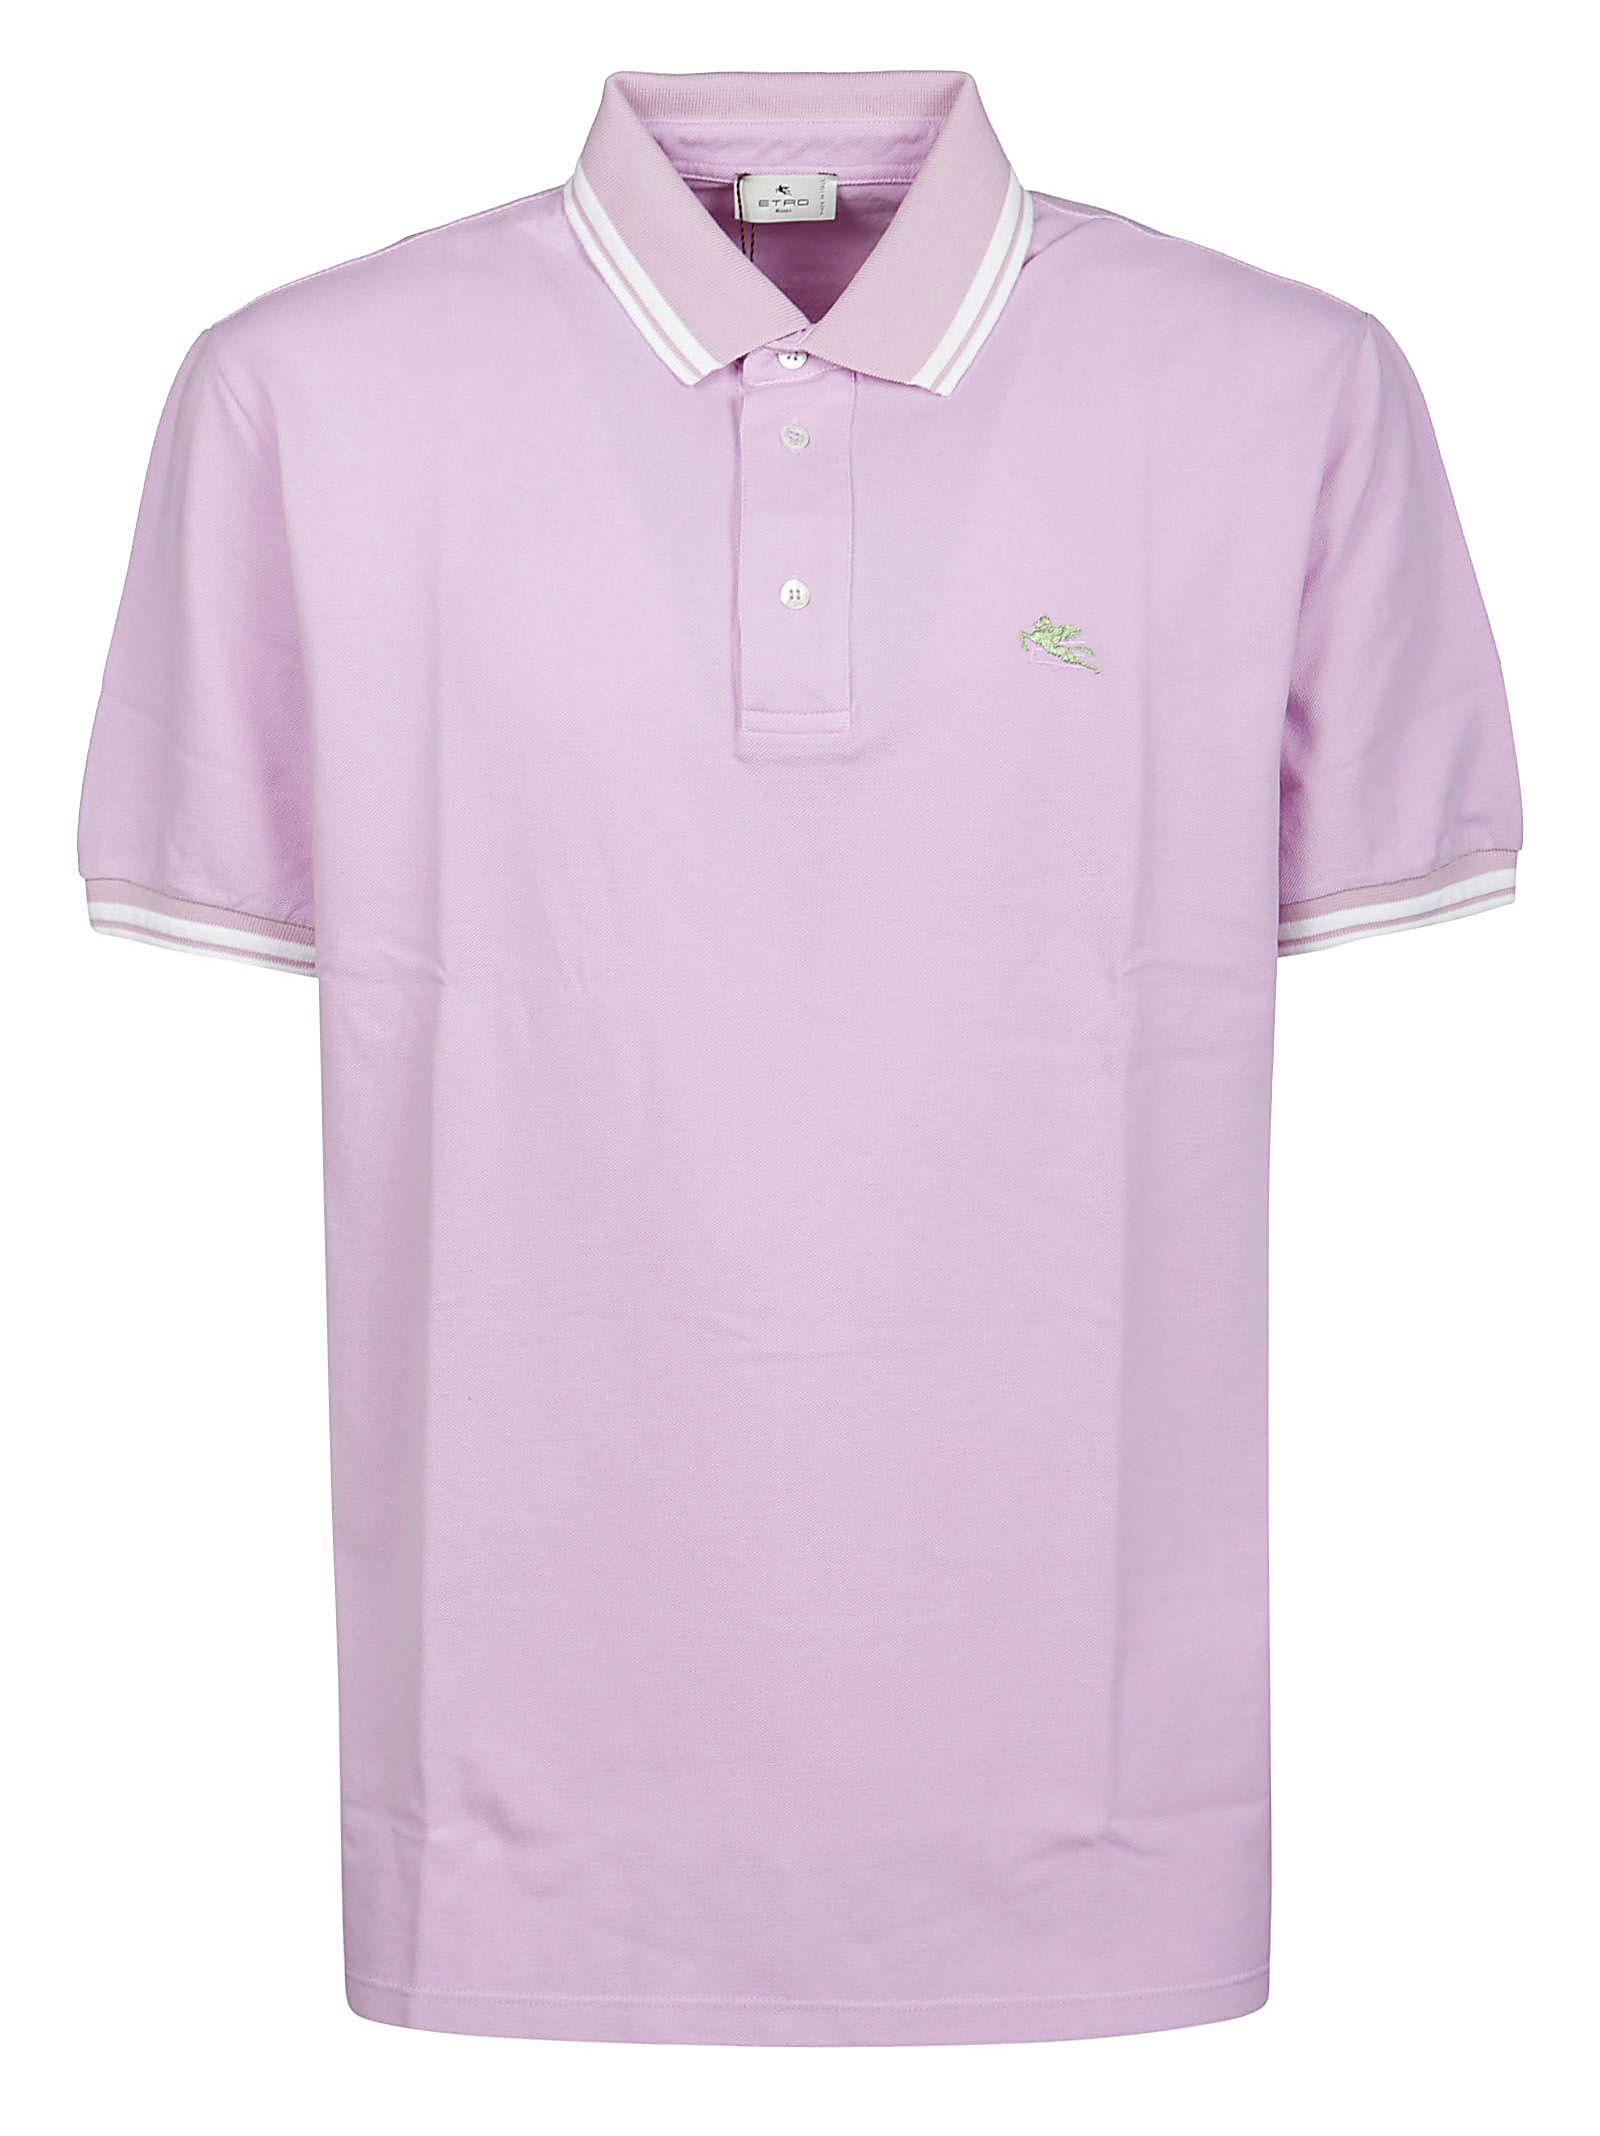 Etro Tops ETRO MEN'S 1Y80099820651 PURPLE OTHER MATERIALS POLO SHIRT